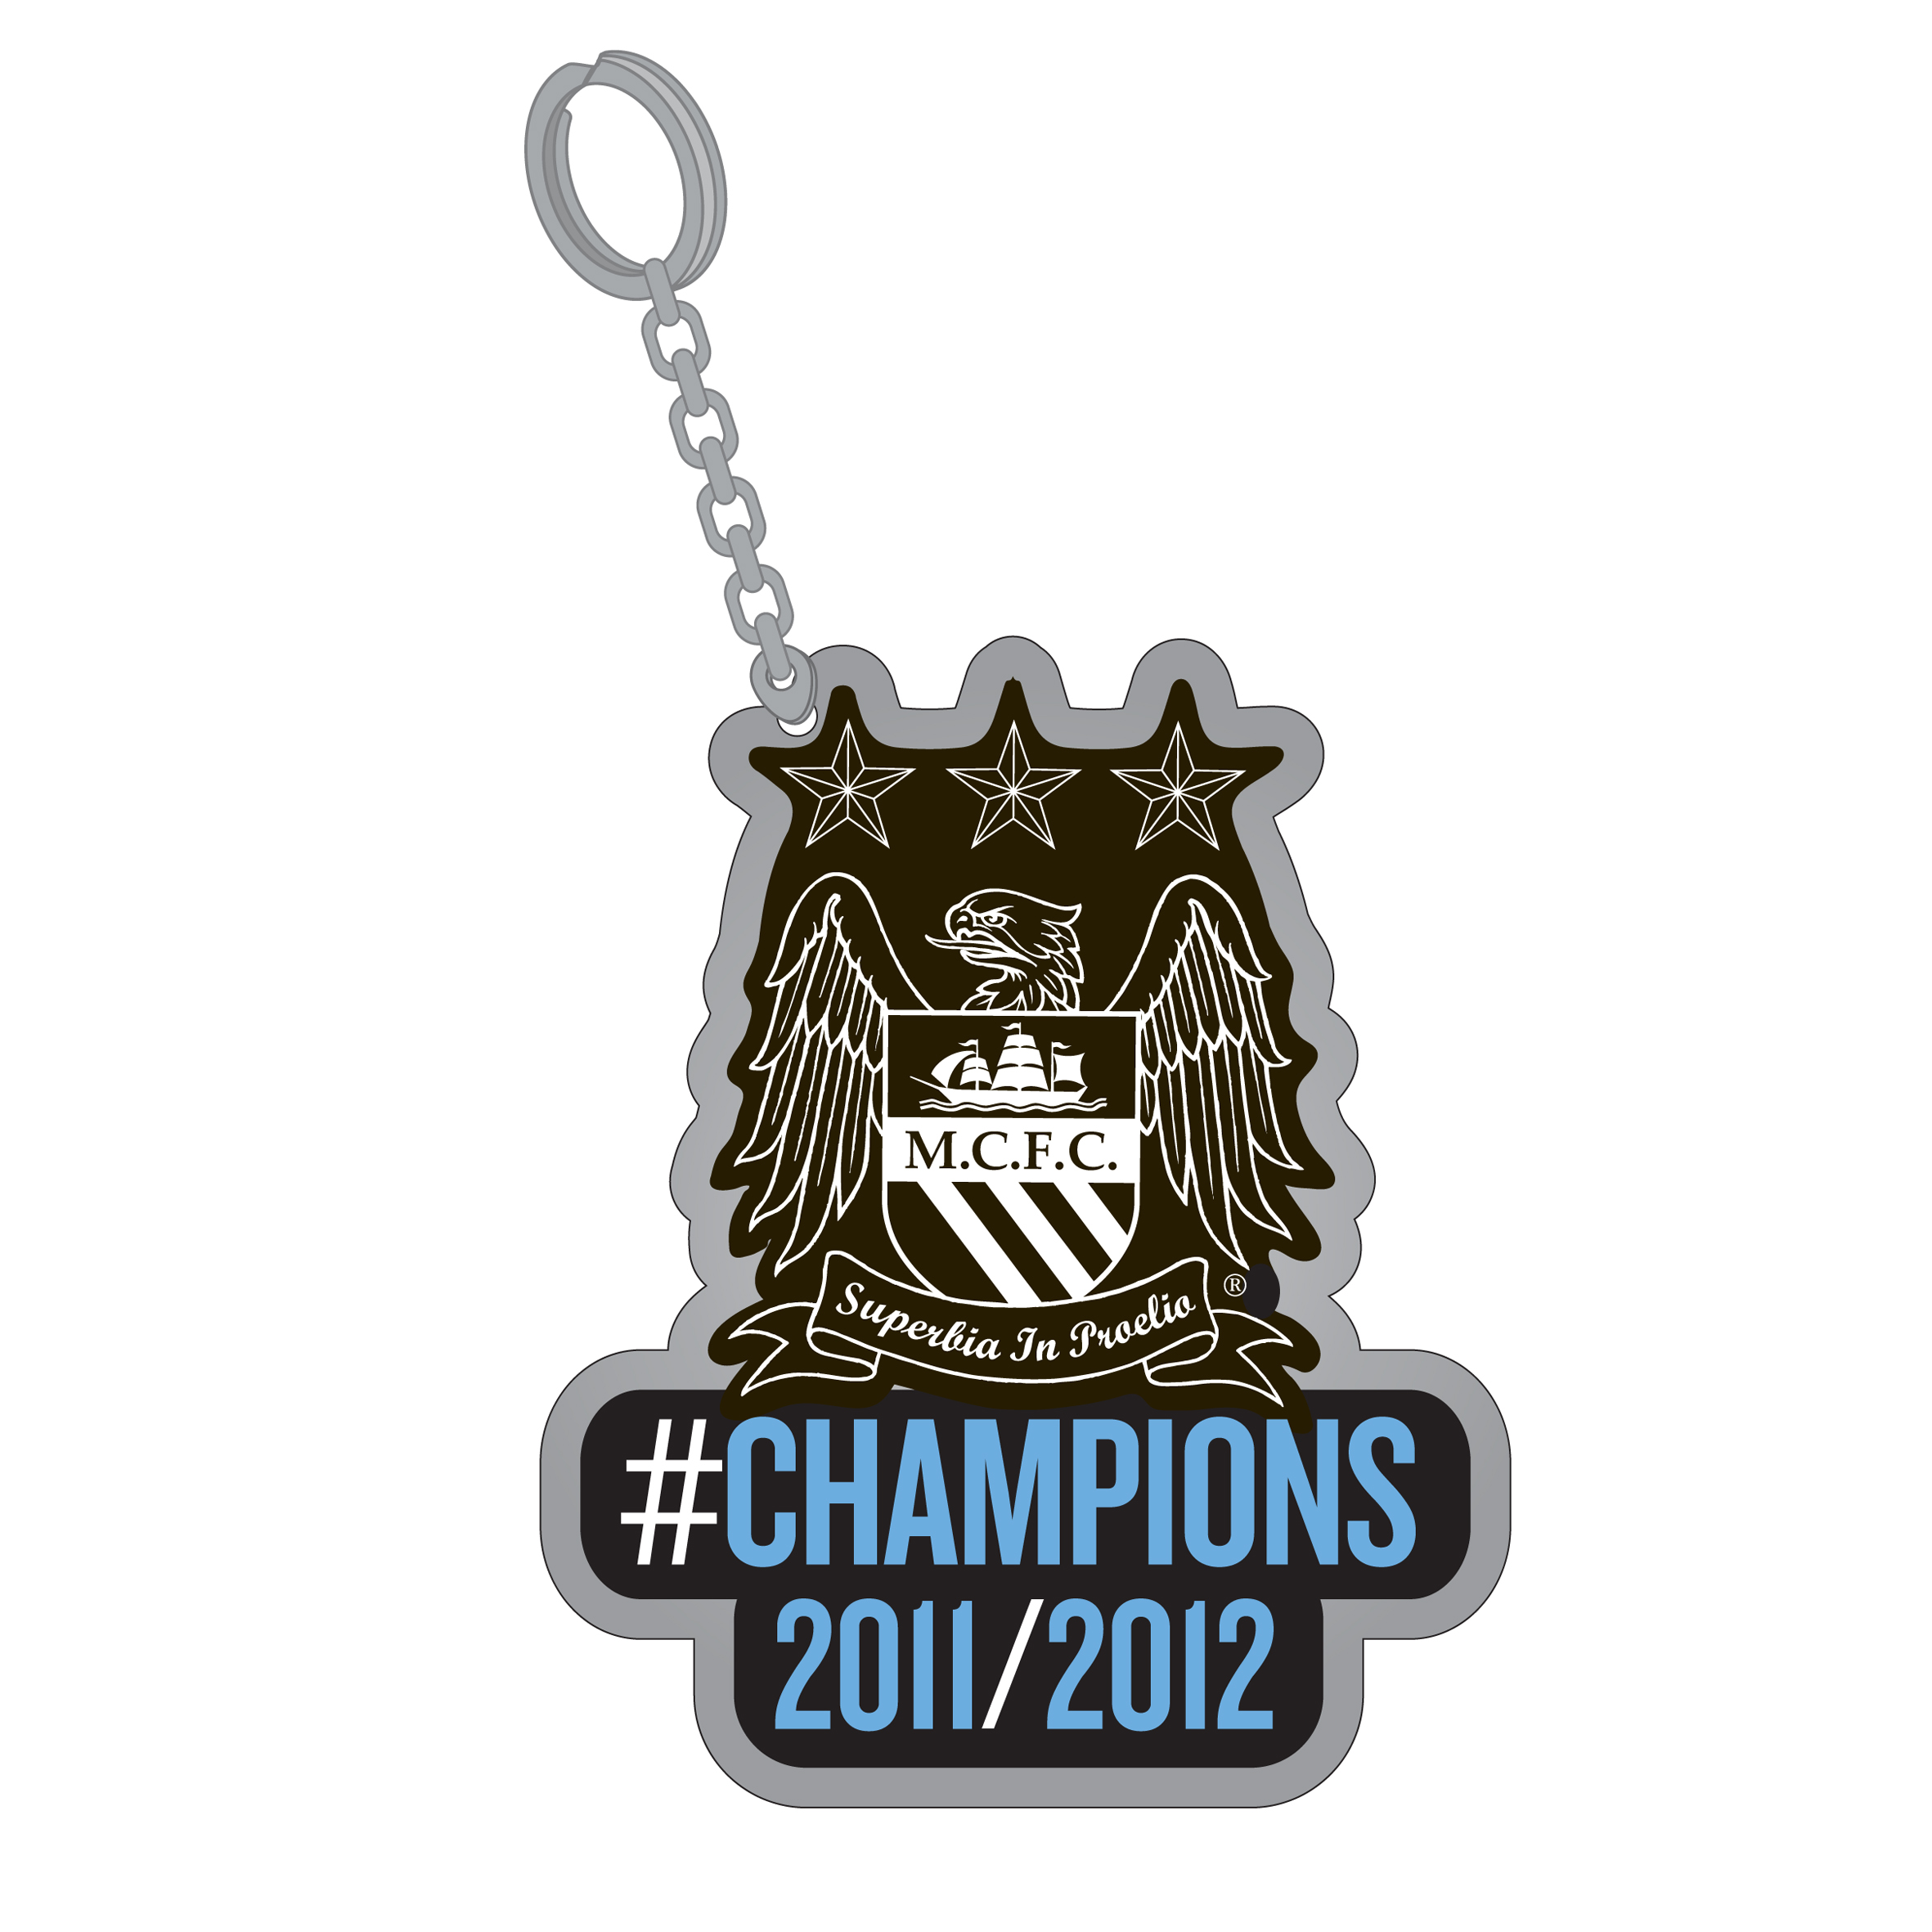 Manchester City #Champions 11/12 Keyring